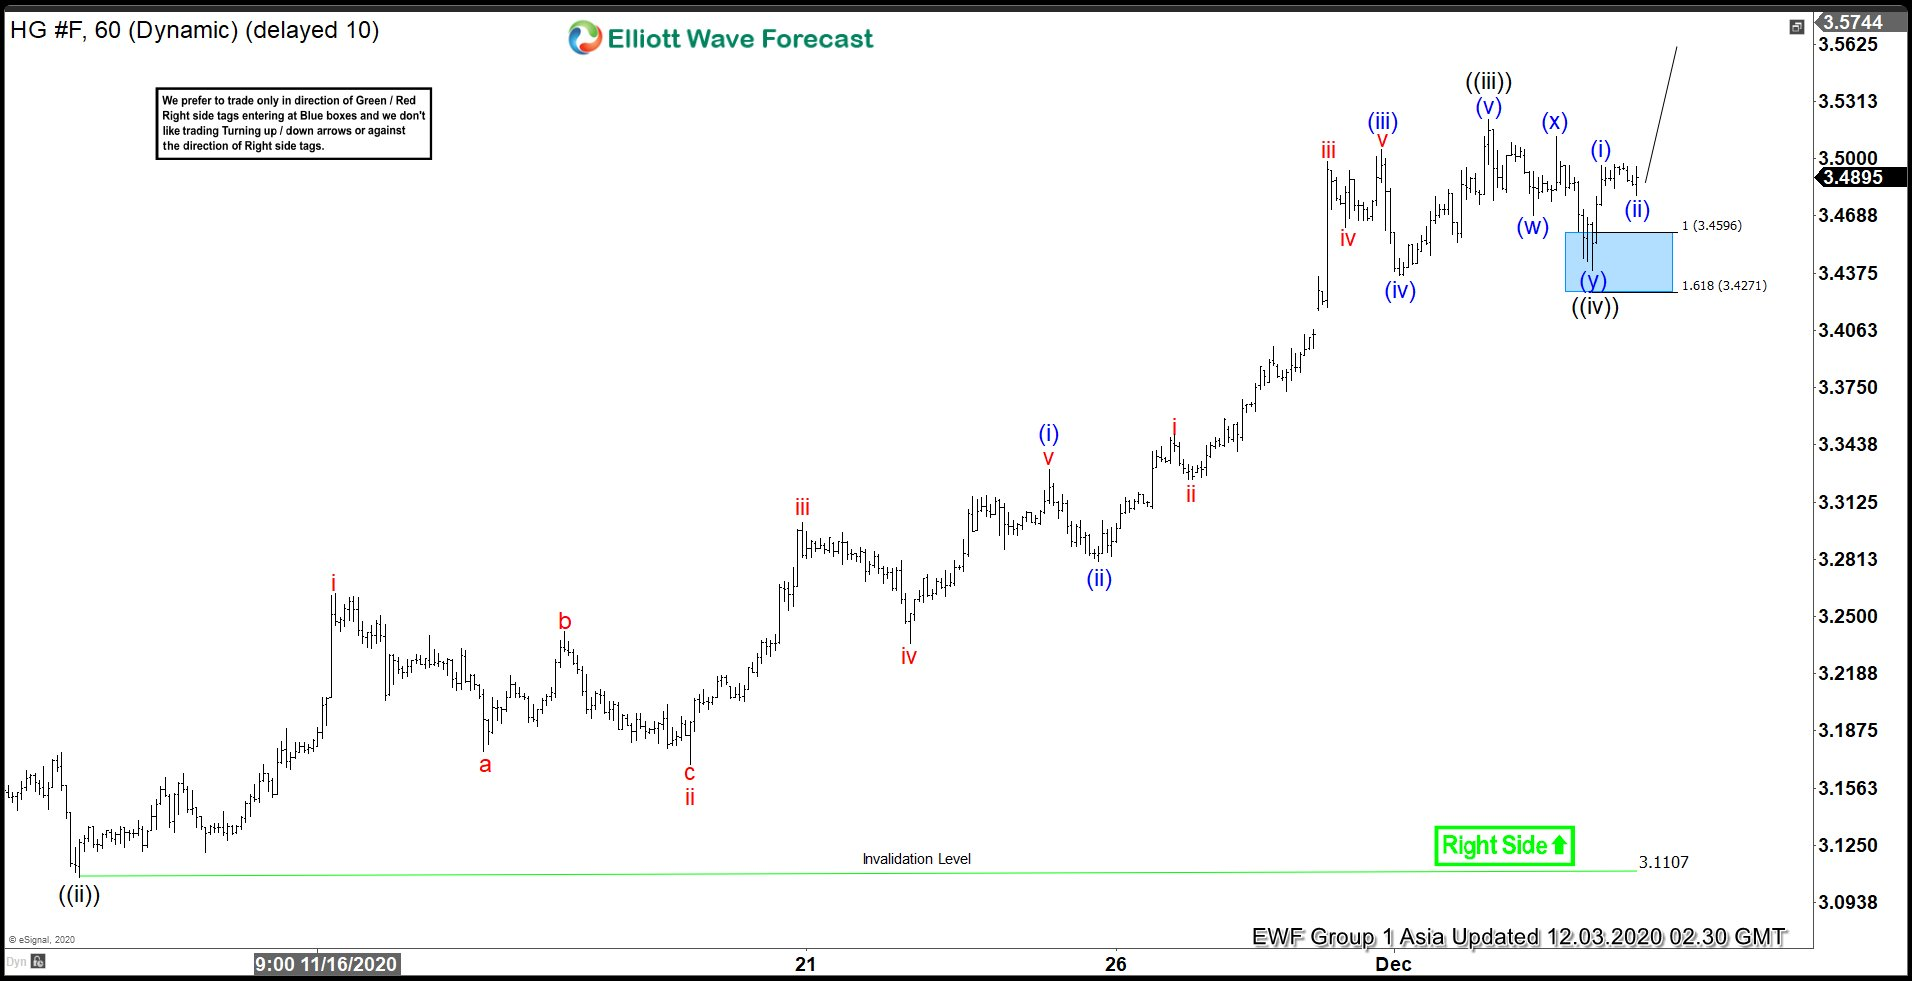 Elliott Wave view: Copper (HG) Still Has Further Upside